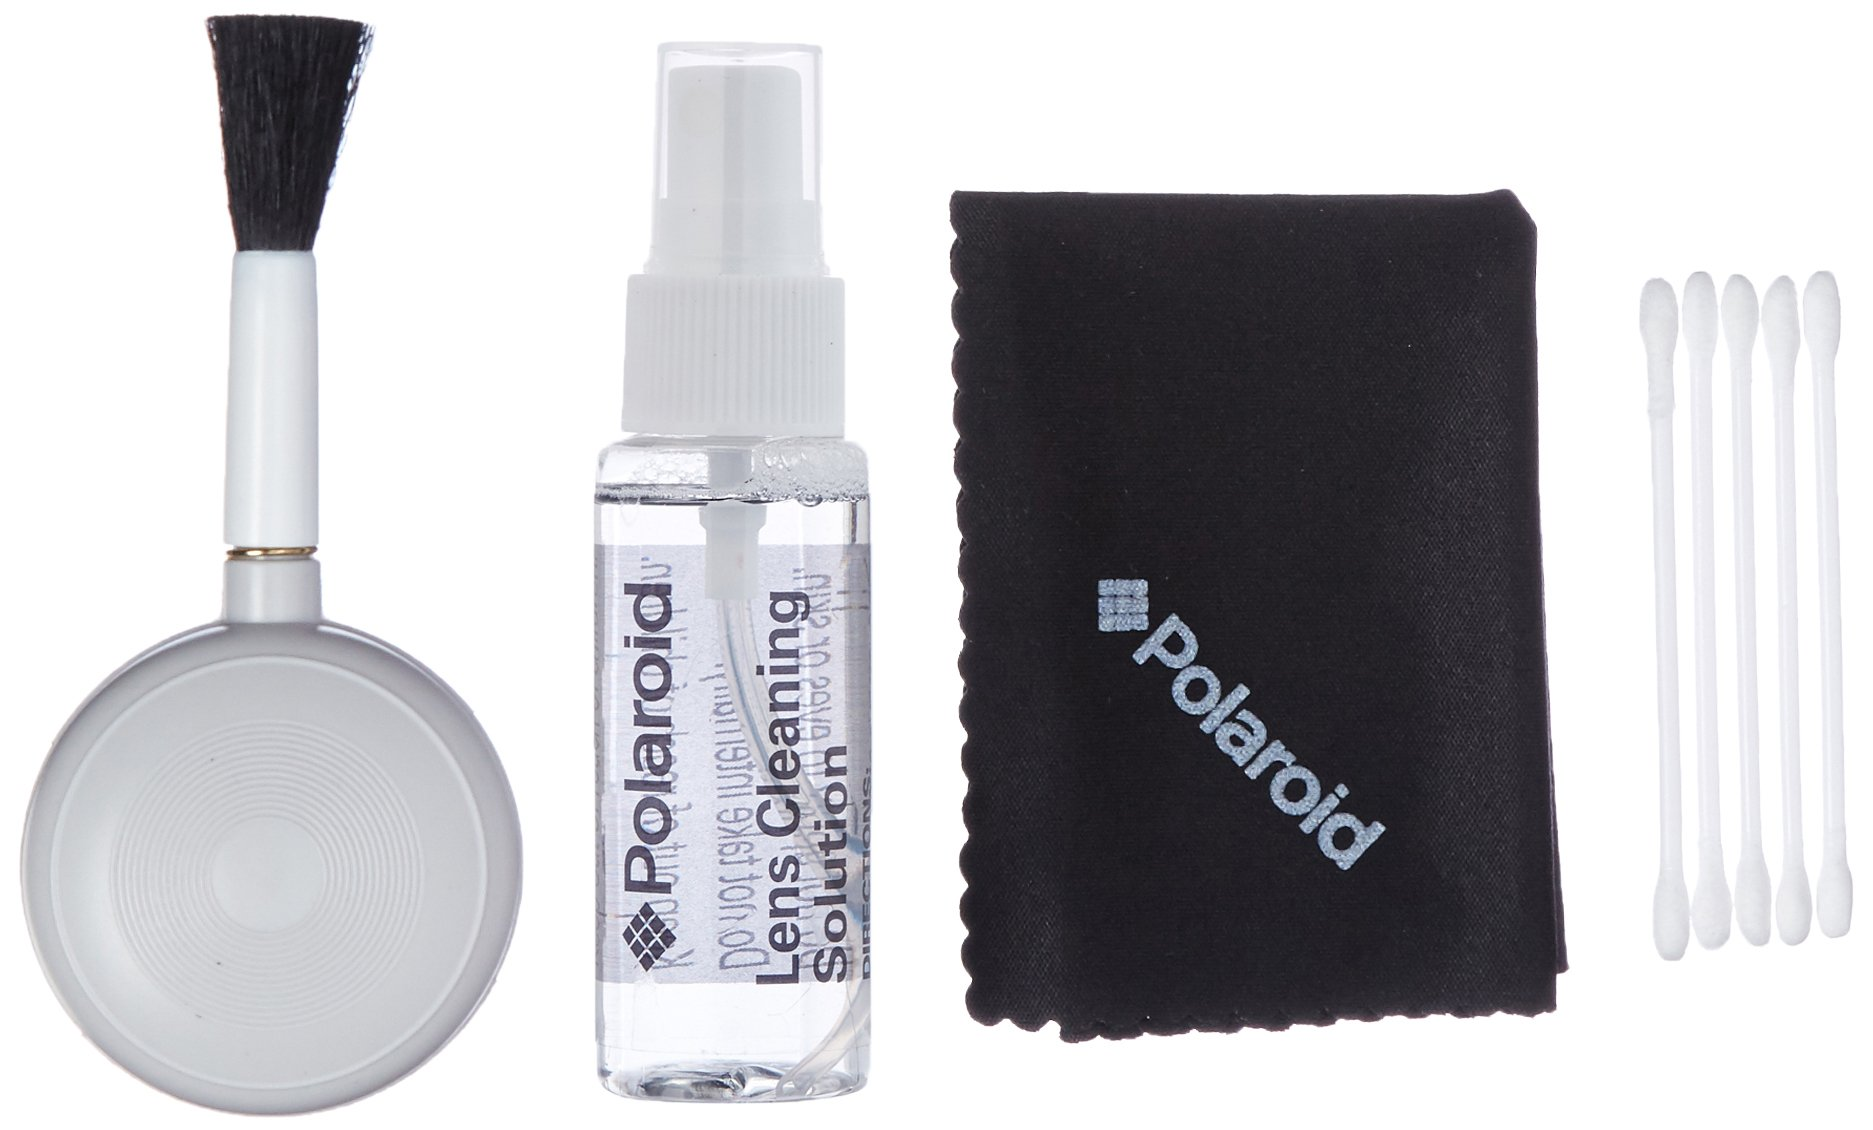 Polaroid 5 Piece Camera/Camcorder Deluxe Cleaning Kit product image